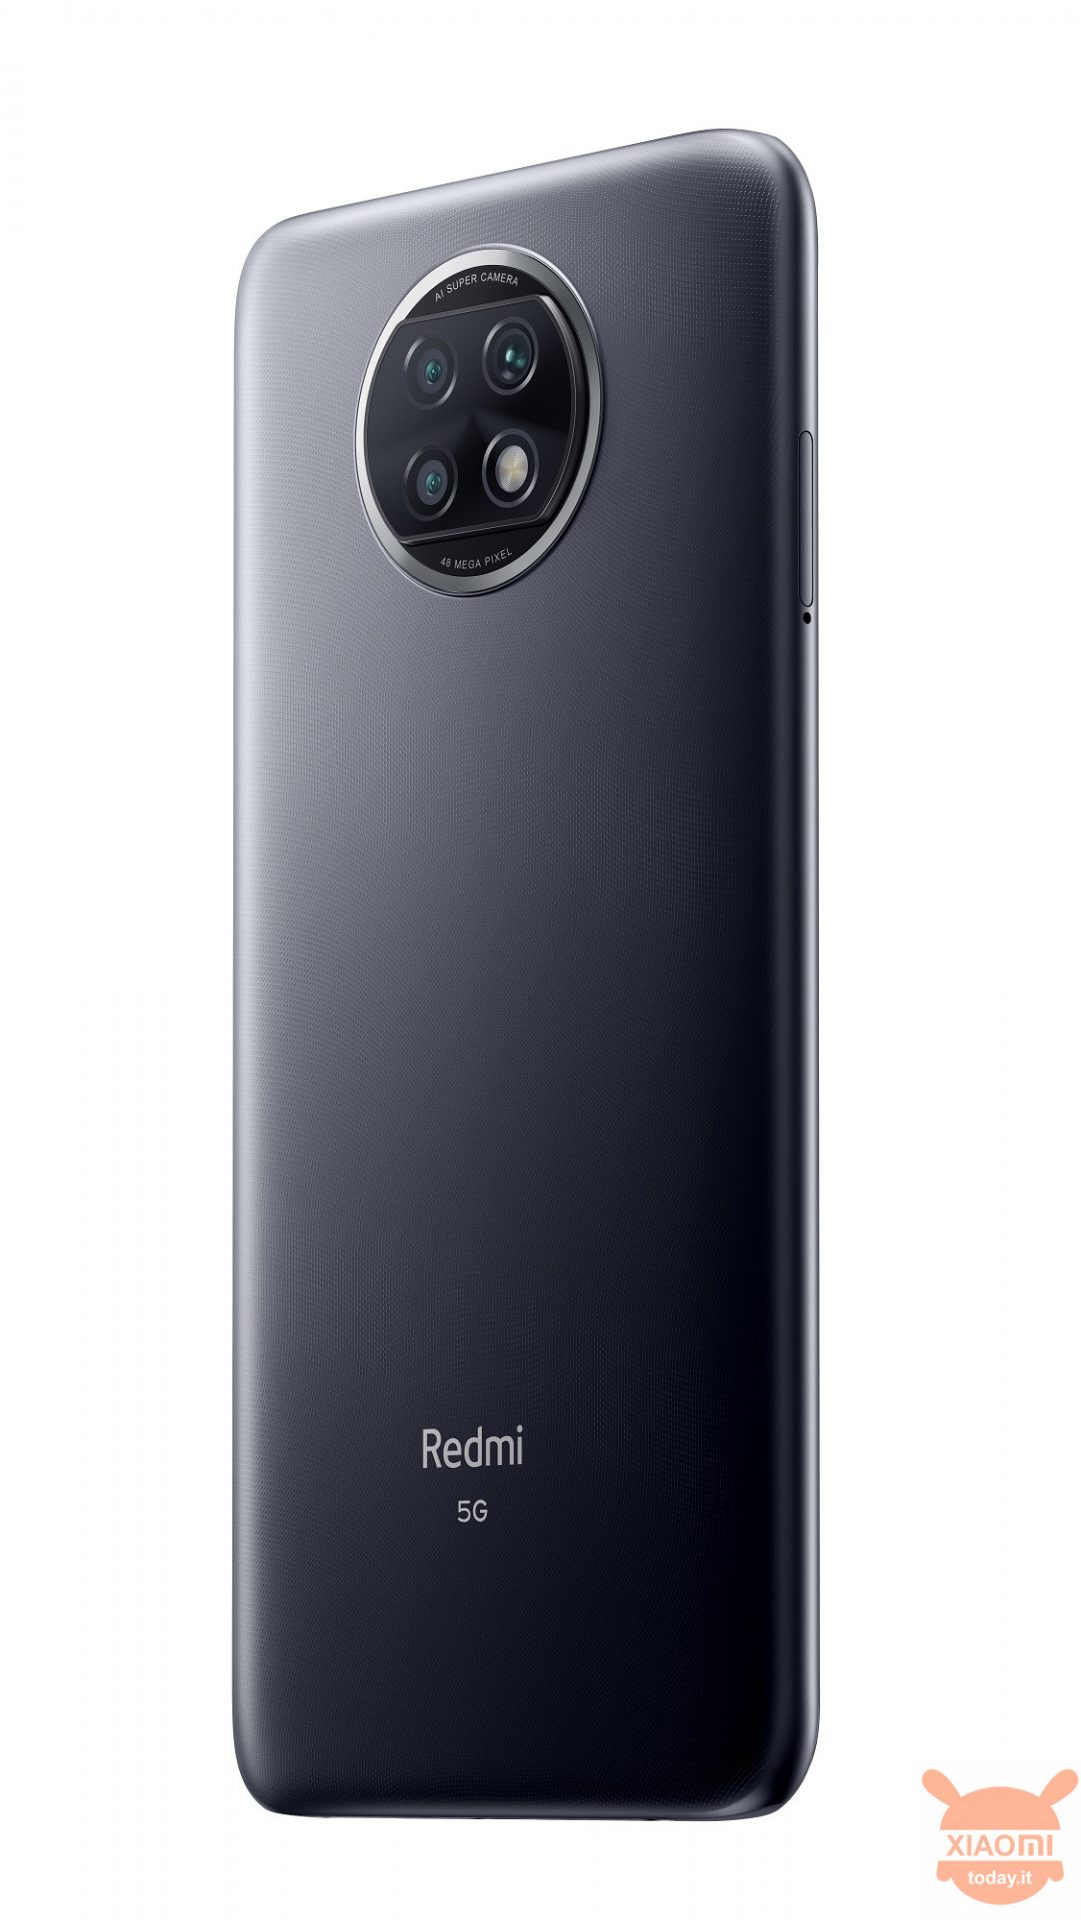 Redmi Note 9T 5G italia specifiche prezzi